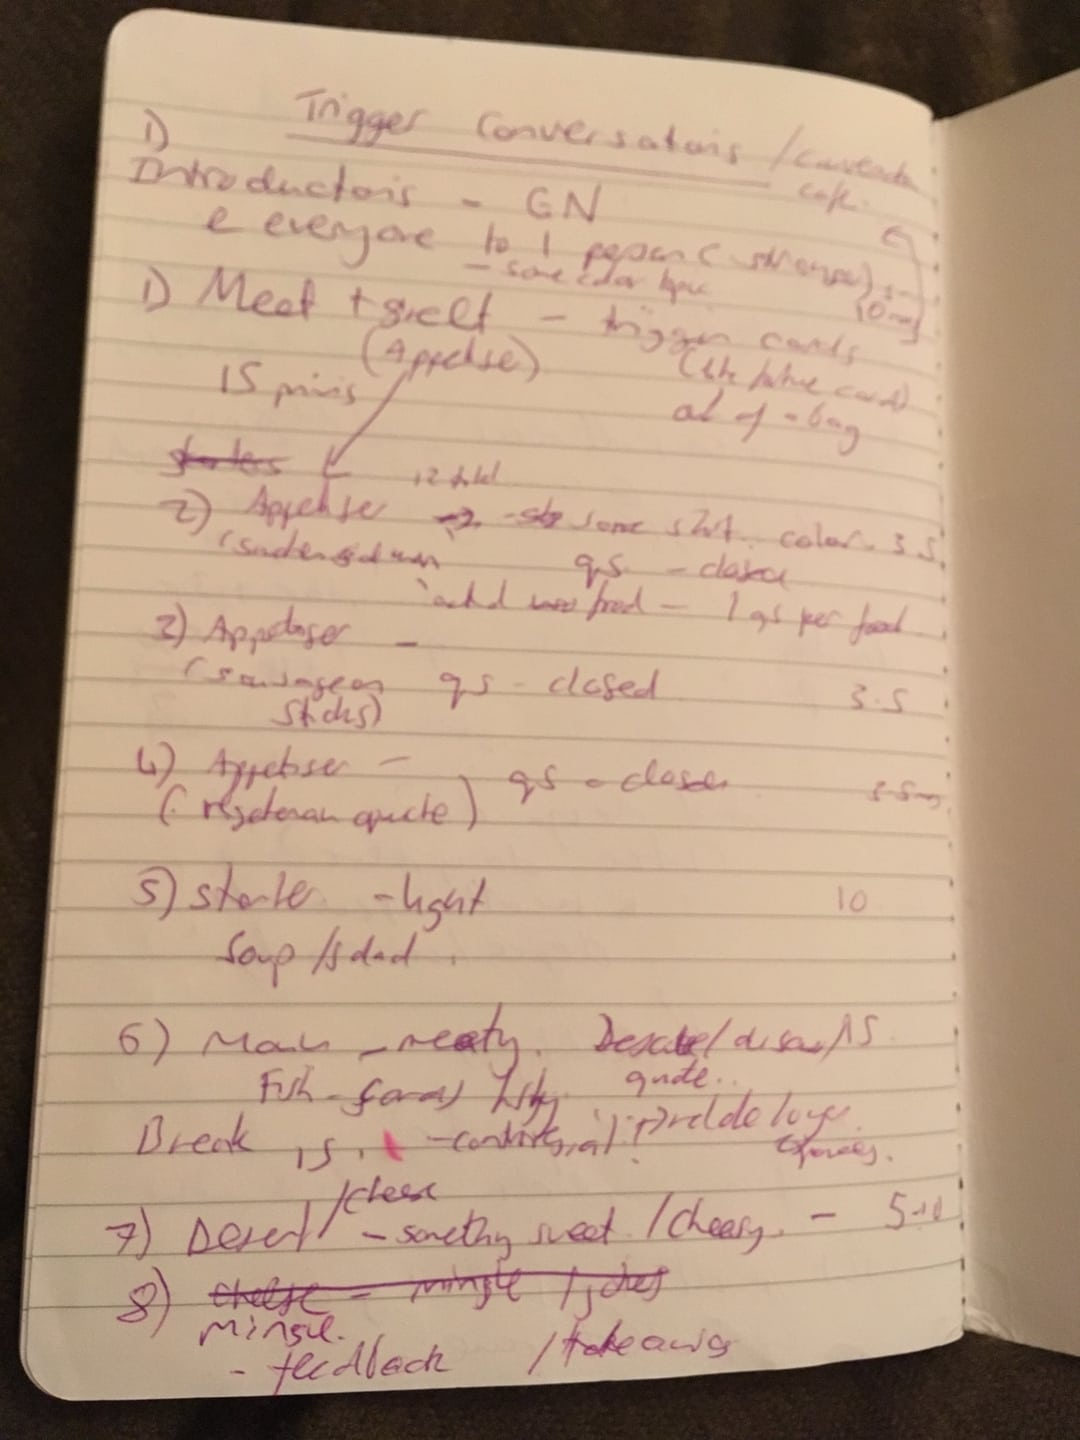 The first version of the conversation menu, written at the back of a notebook at the festival.